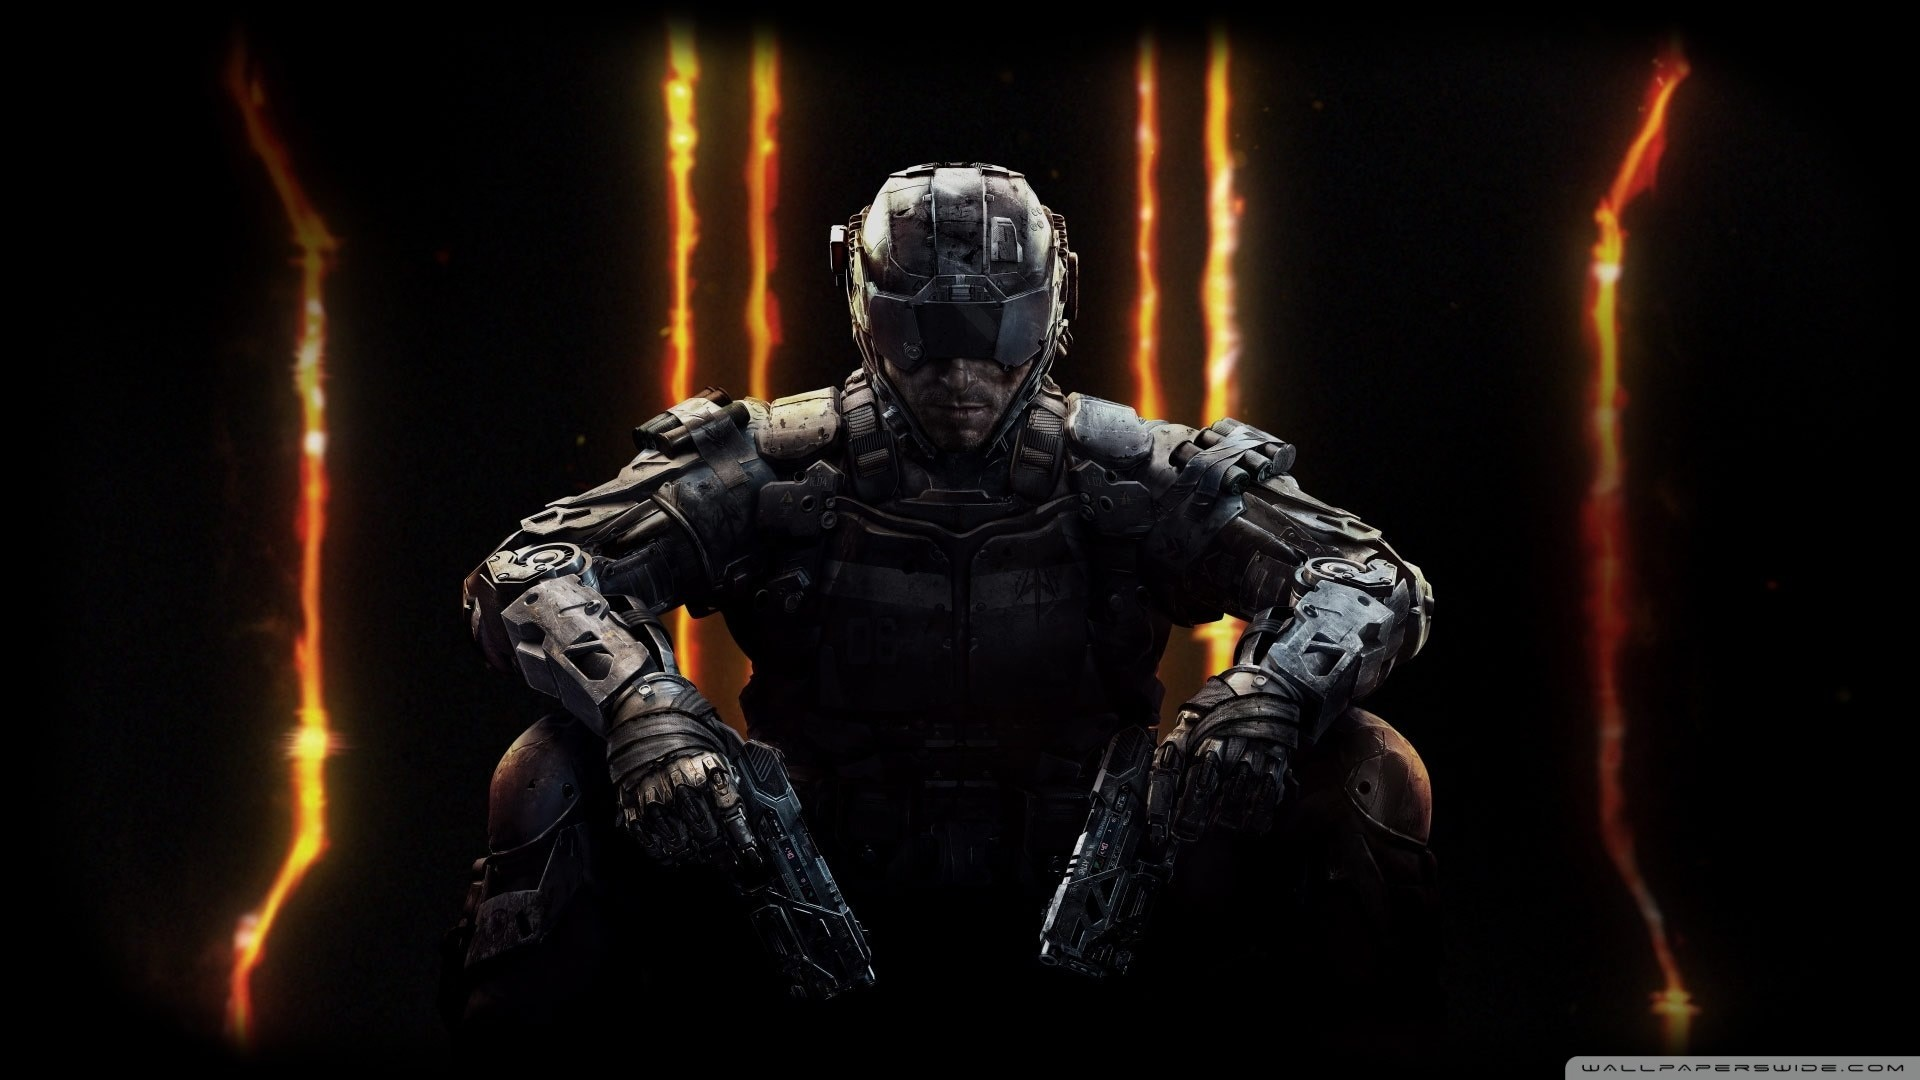 1920x1080 Call of Duty Black Ops 3 HD Wide Wallpaper for Widescreen